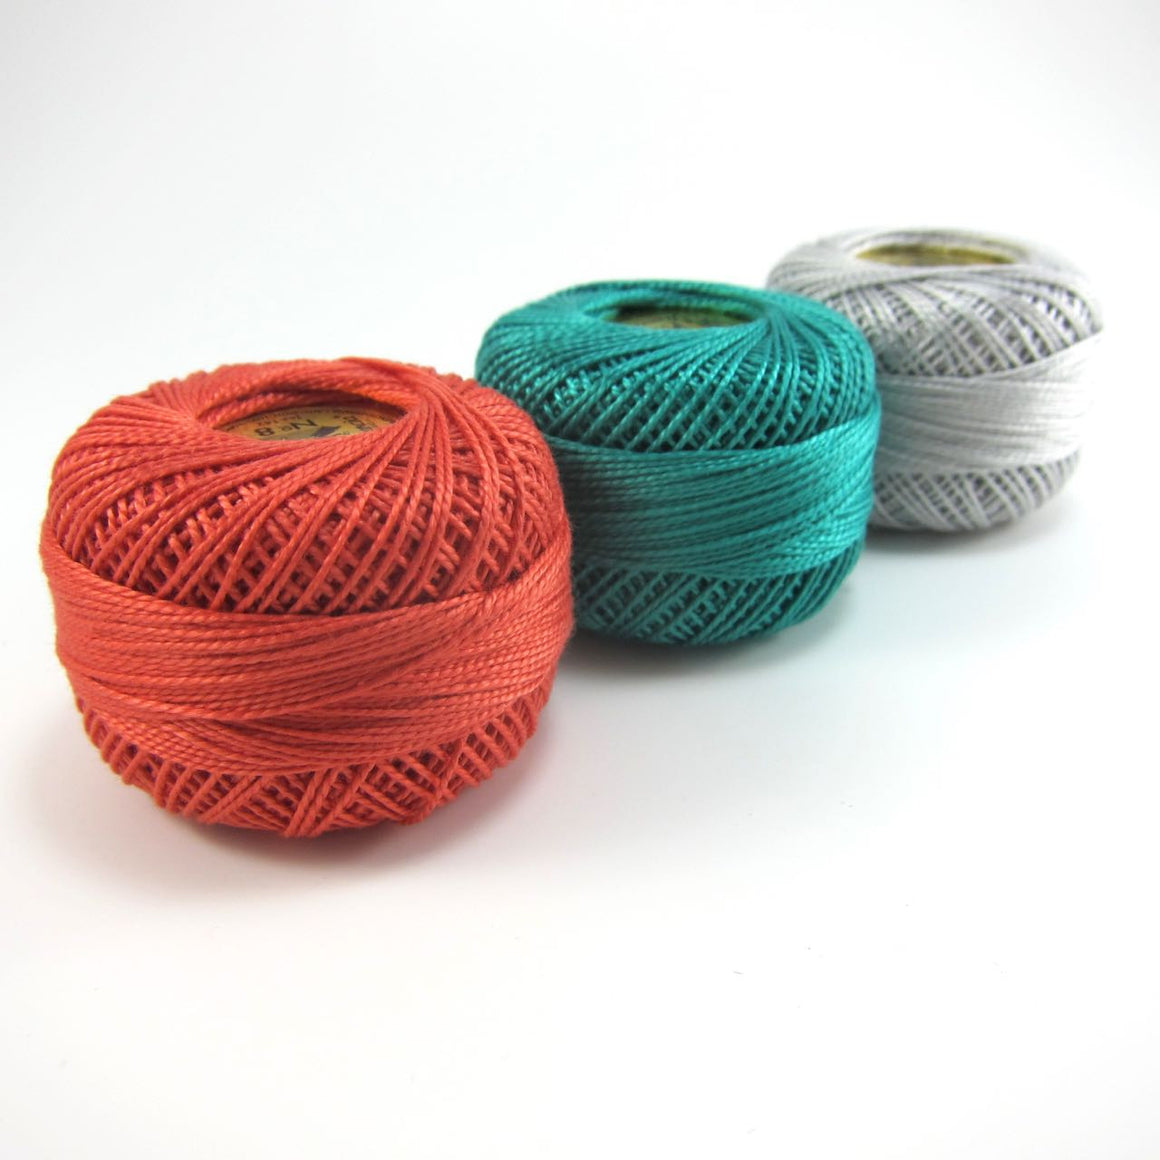 Teal, Coral & Gray Finca Perle Cotton Thread Set